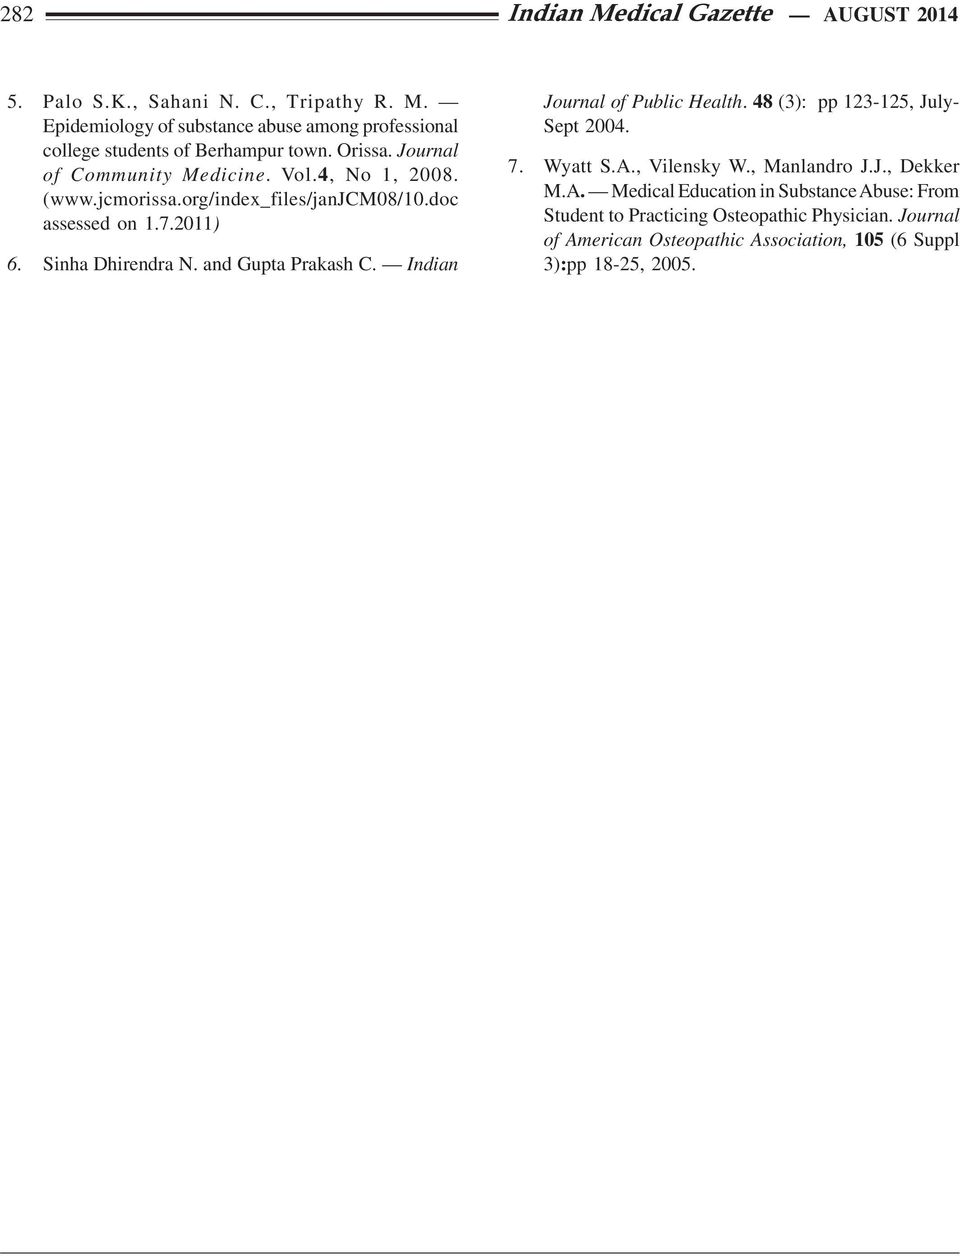 and Gupta Prakash C. Indian Journal of Public Health. 48 (3): pp 123-125, July- Sept 2004. 7. Wyatt S.A.